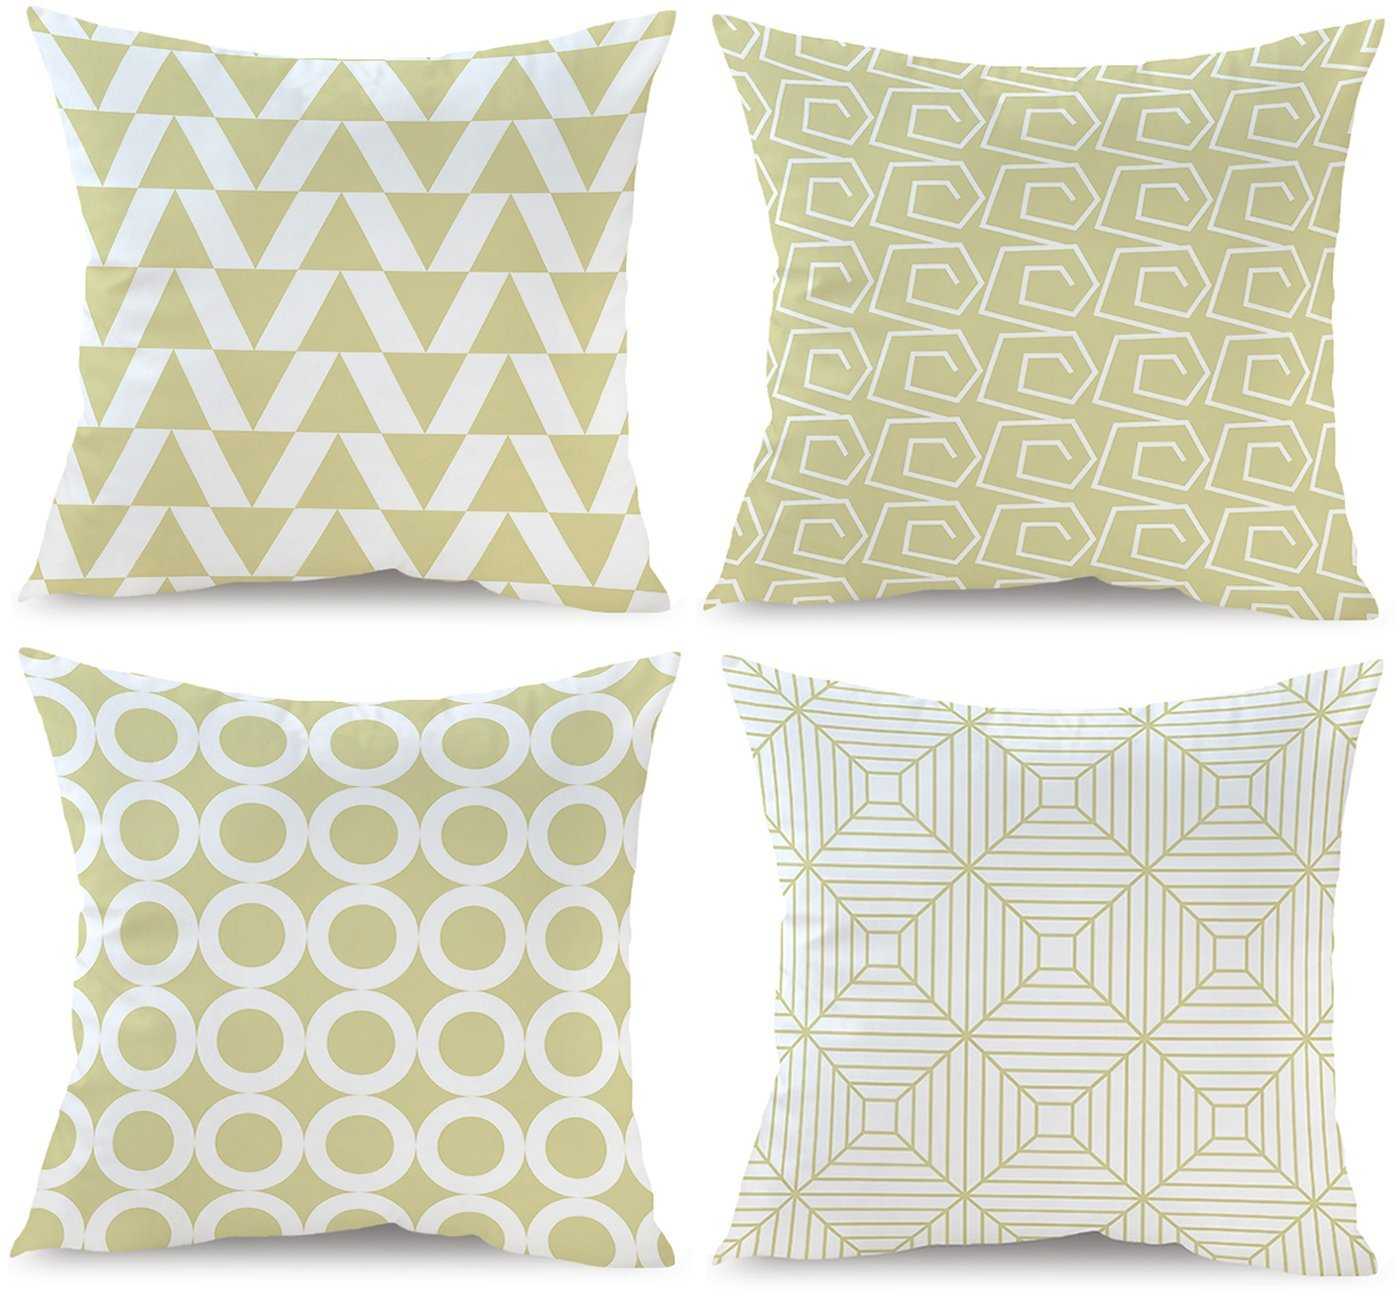 BLUETTEK Simple Decorative Throw Pillow Covers Set of 4 18 x 18 Inches, Triangle, Rings, Squares Design, Soft Velvet Accent Cushion Cases 45cm x 45cm for Couch Sofa Bed (Light Yellow)